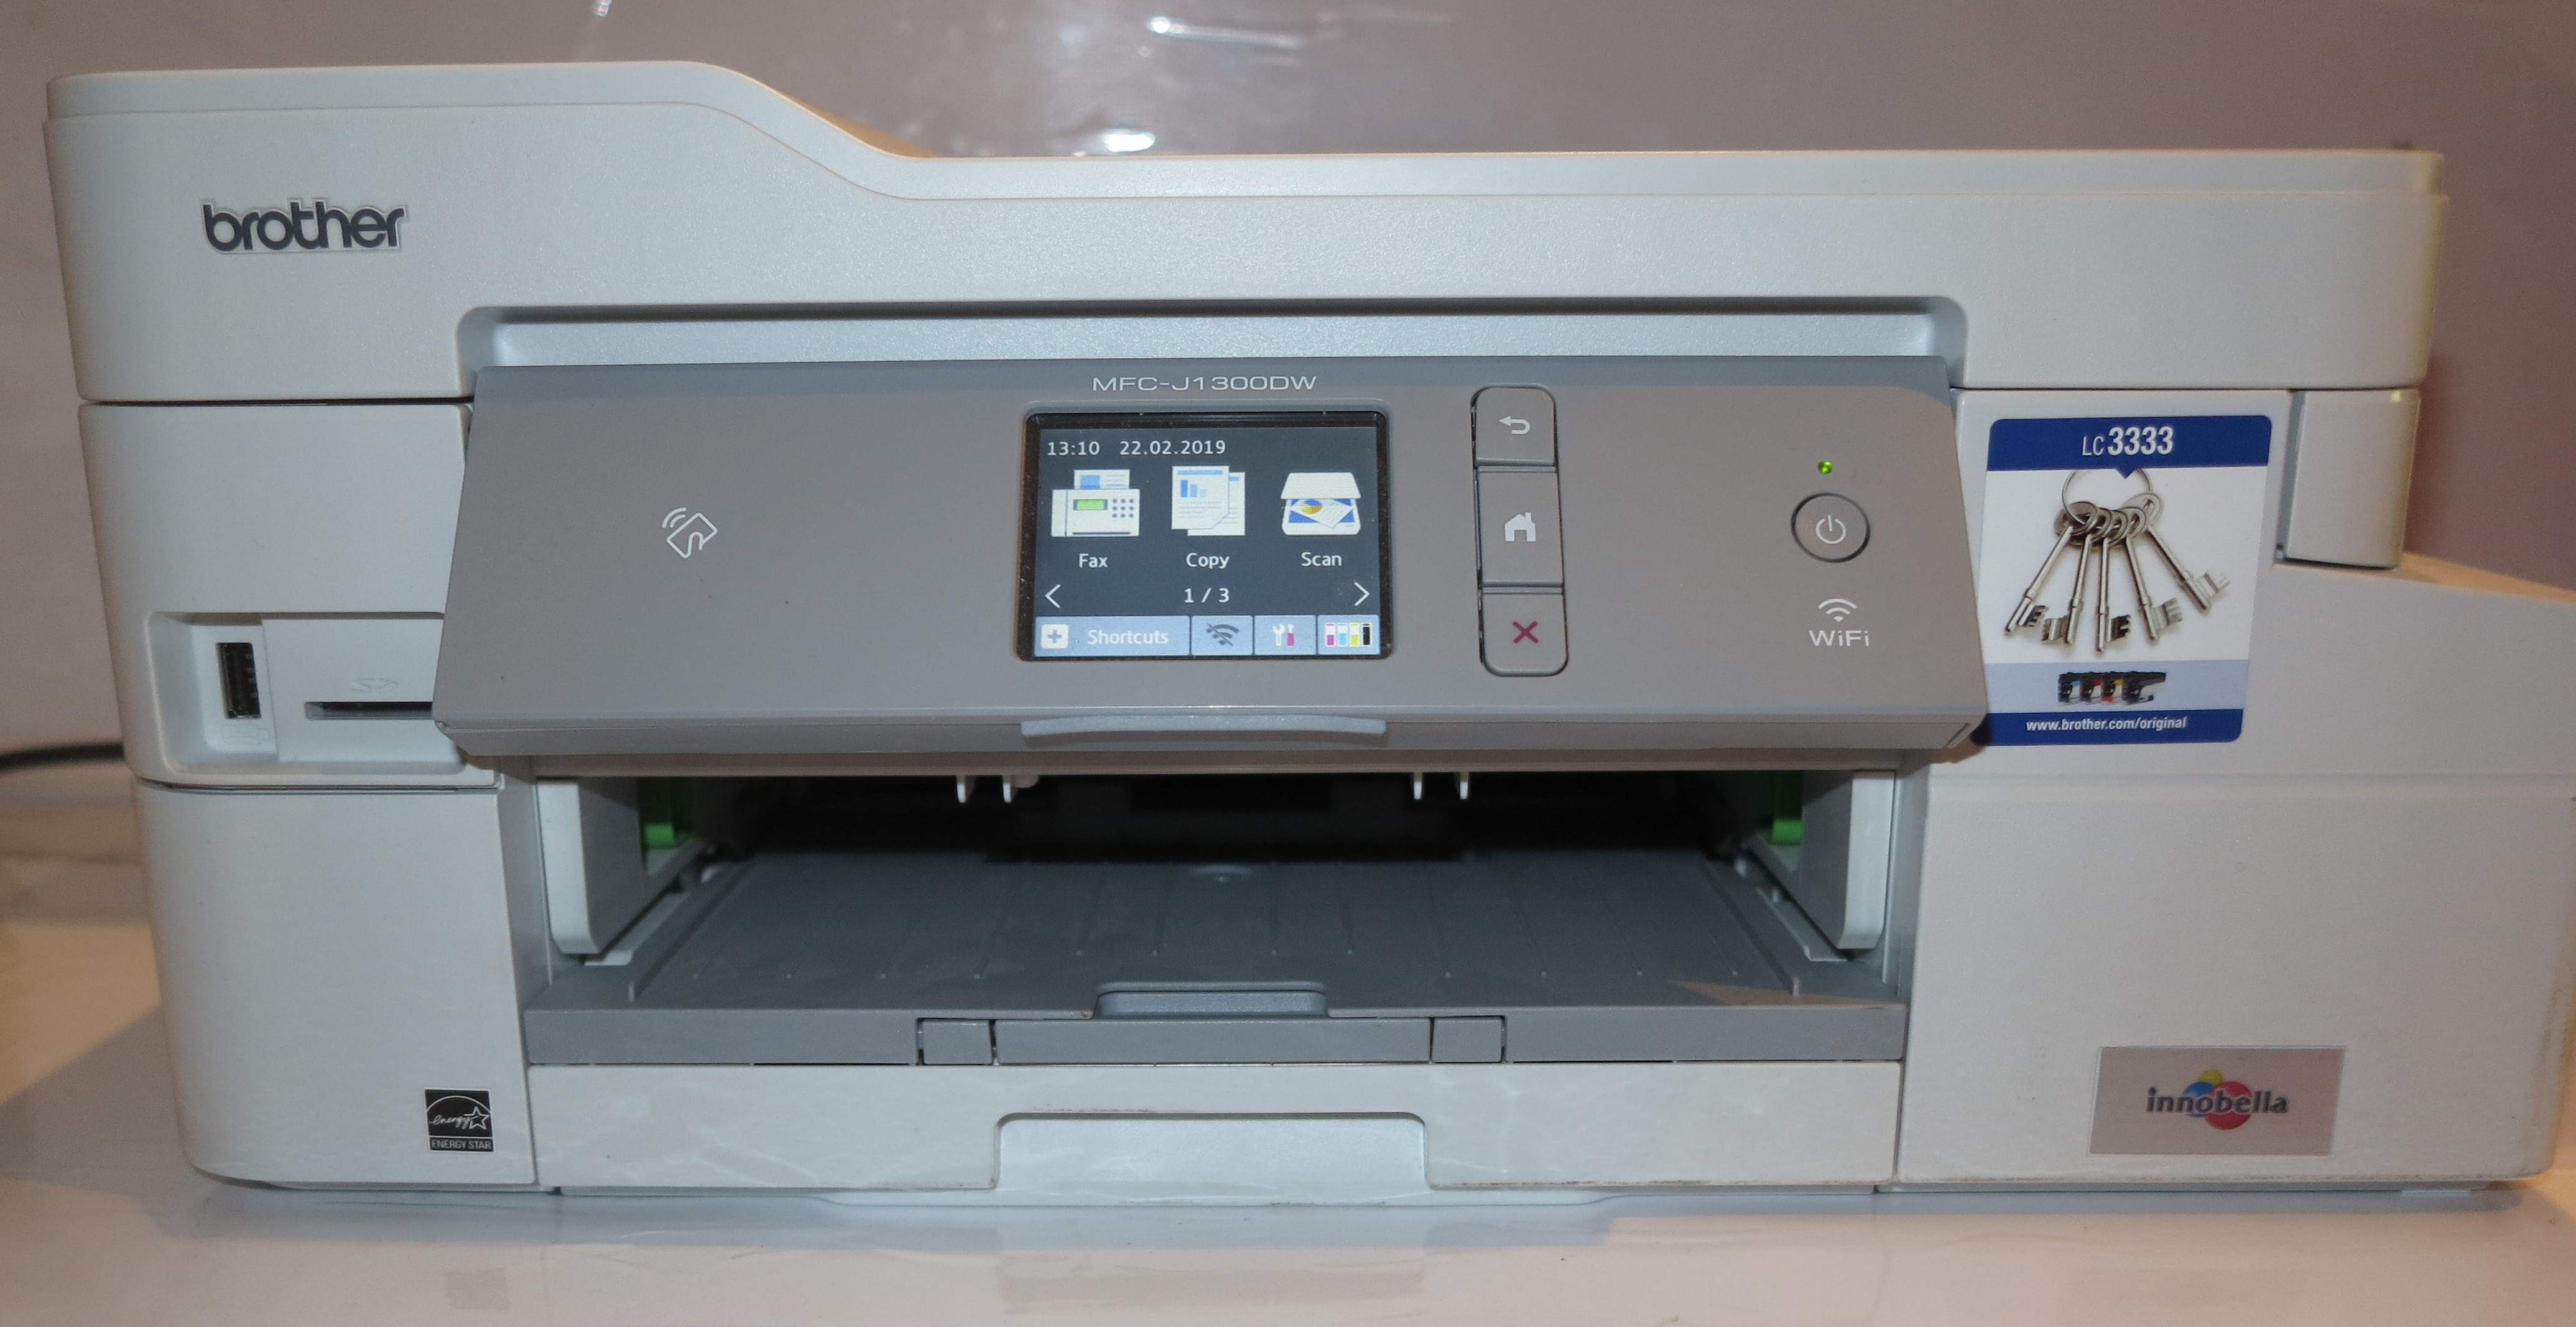 Why do I consider a digital fax vault an important feature for multifunction printers?